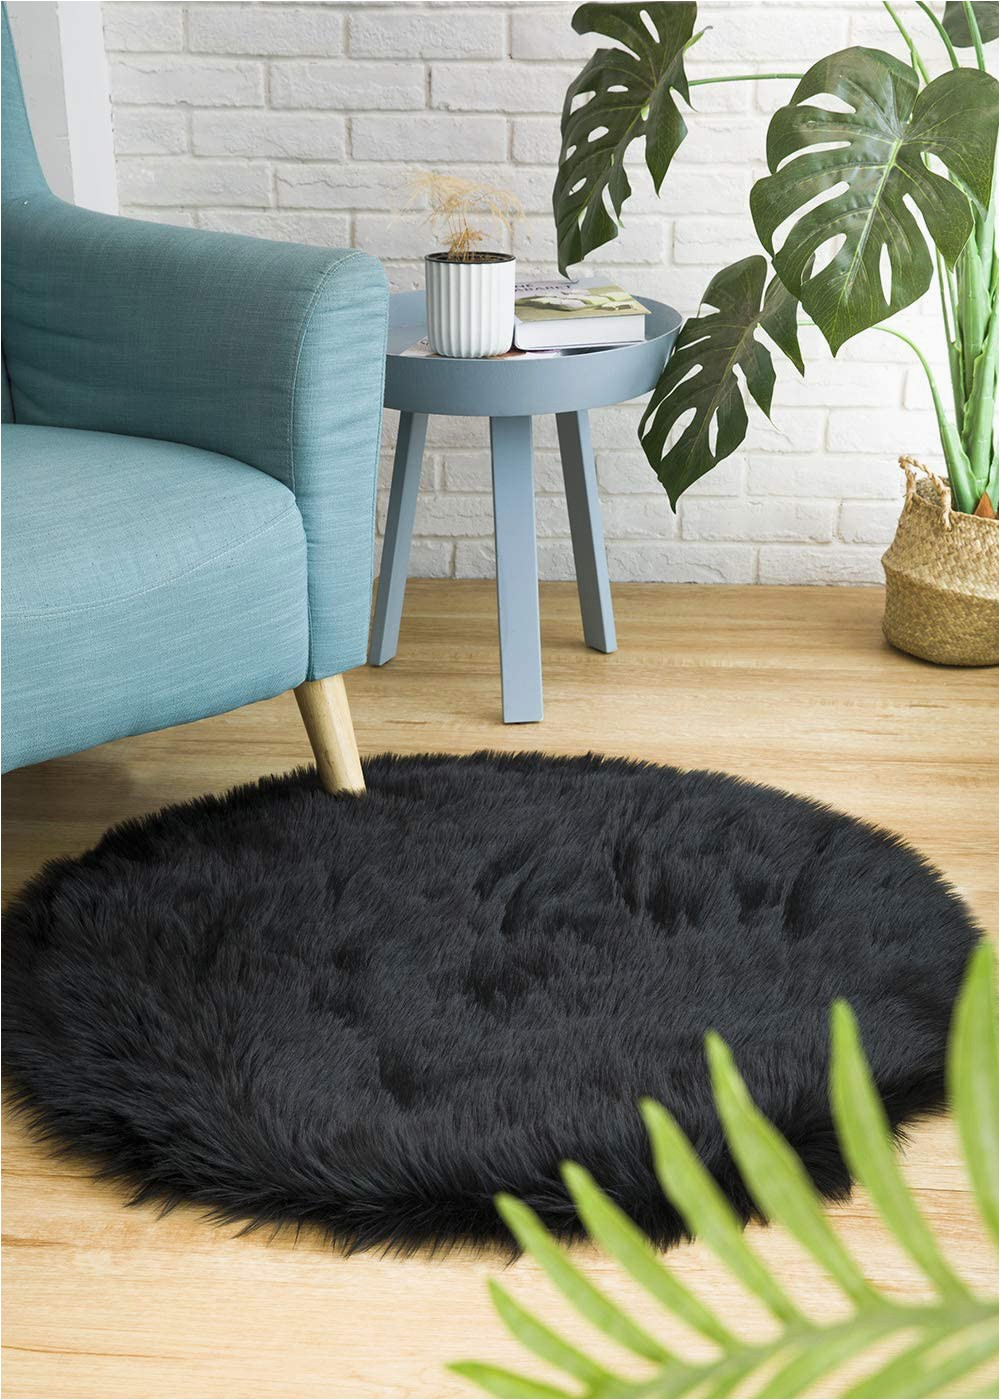 Faux Sheepskin area Rug 8x10 Ciicool soft Faux Sheepskin Fur area Rugs Fluffy Rugs for Bedroom Silky Fuzzy Carpet Furry Rug for Living Room Girls Rooms Black Round 3 X 3 Feet